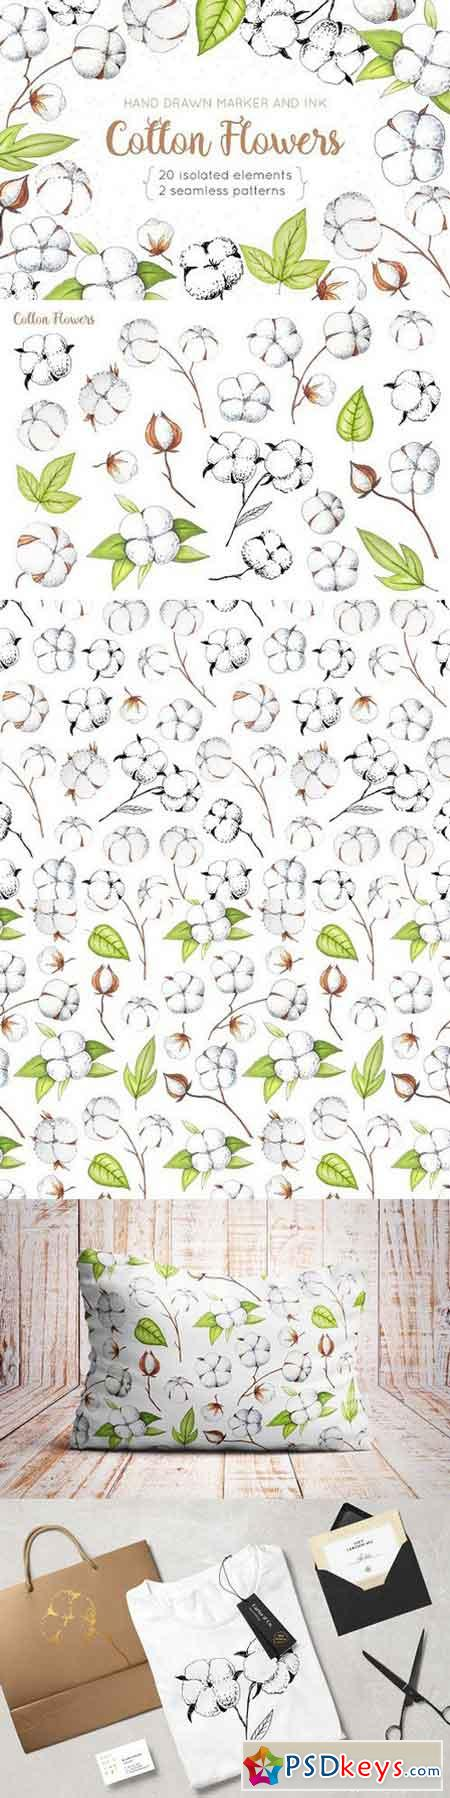 Cotton Flowers Handdrawn Set 1436654